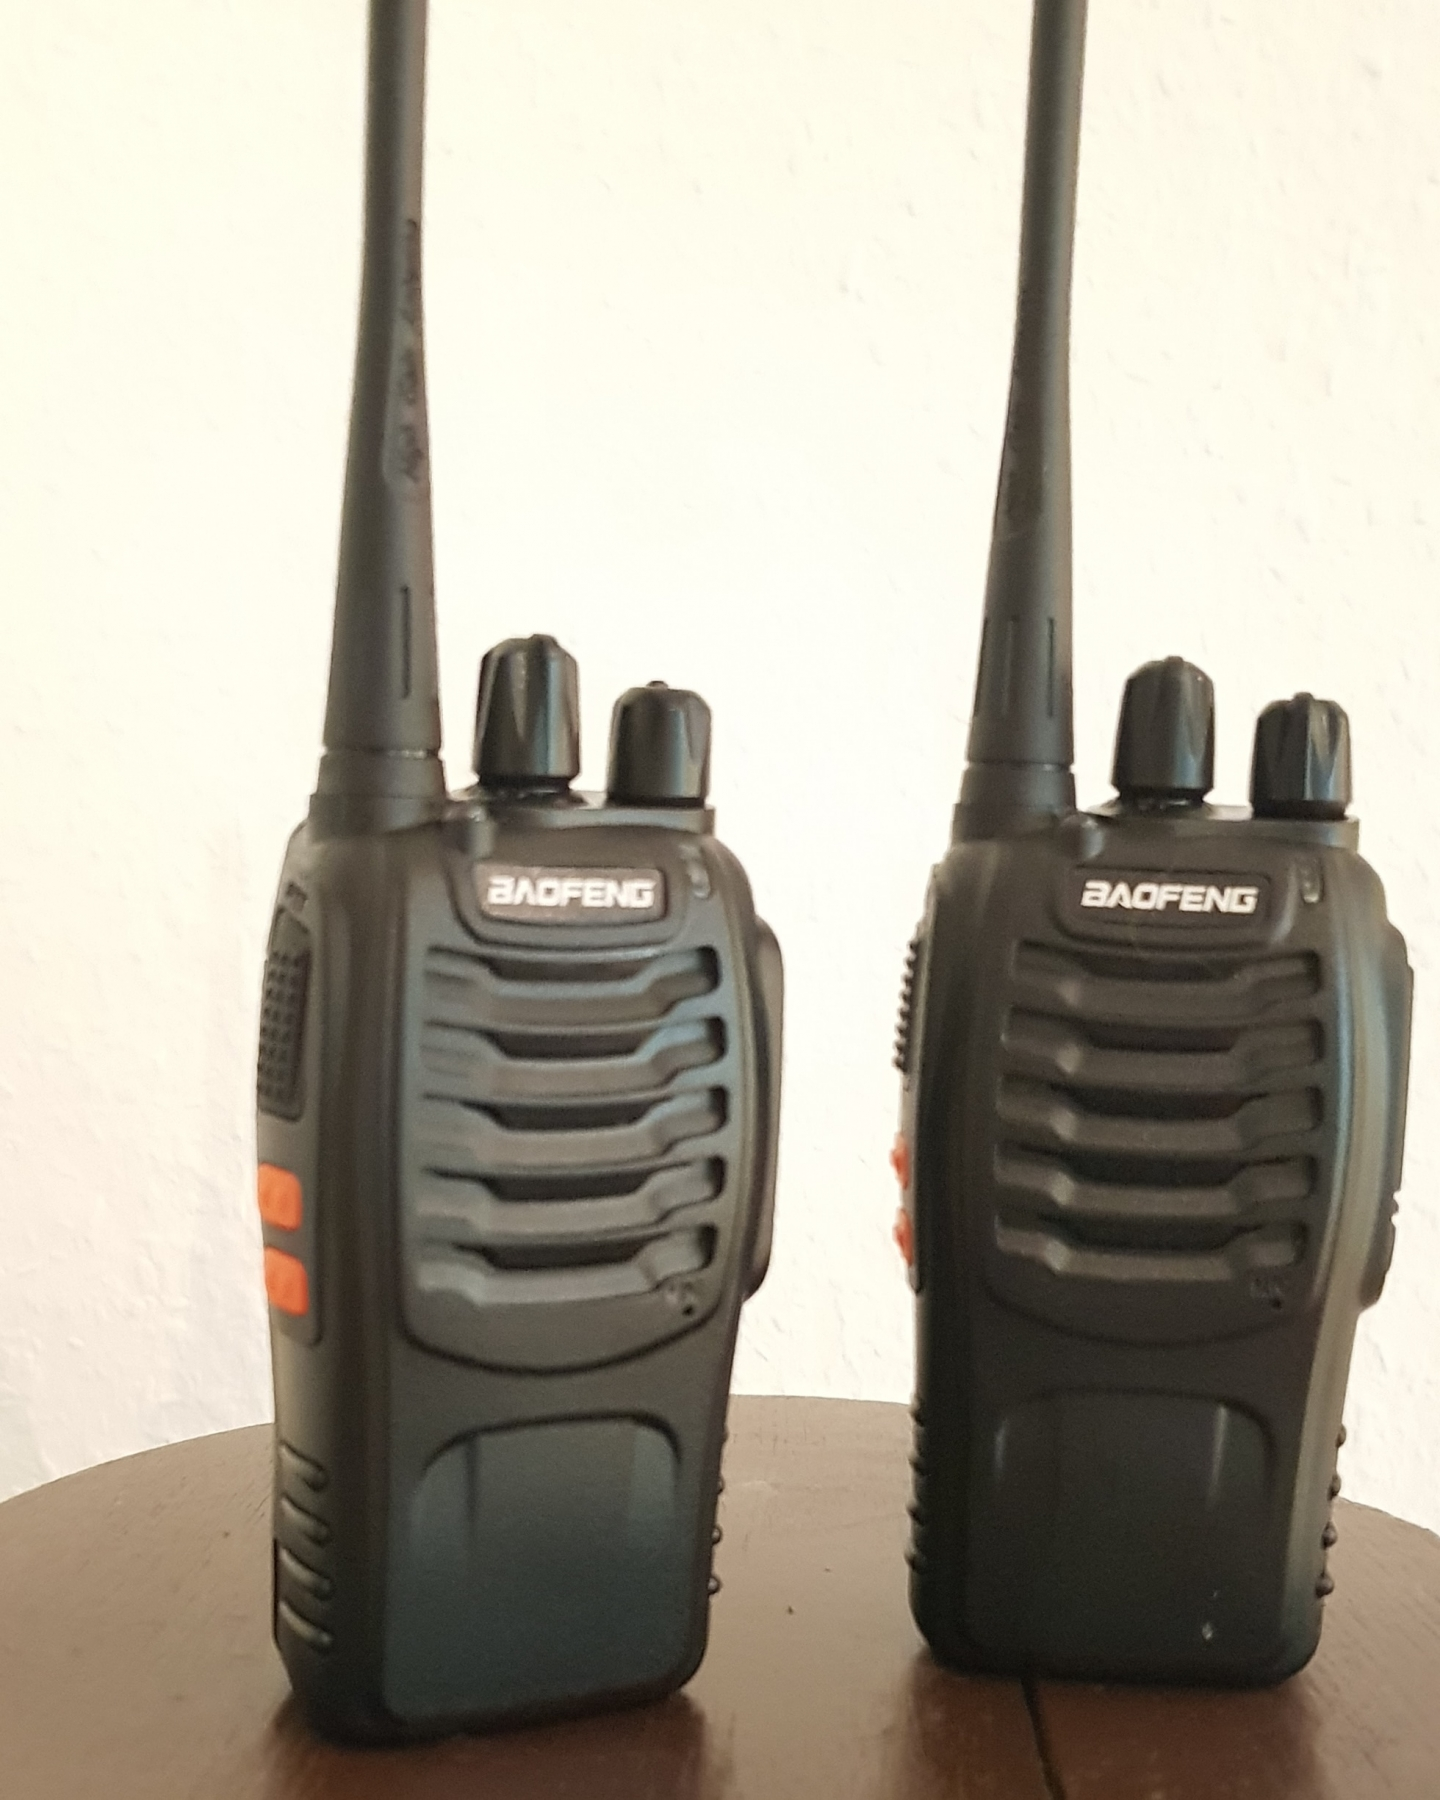 Super Walkie Talkies für Unterwegs!